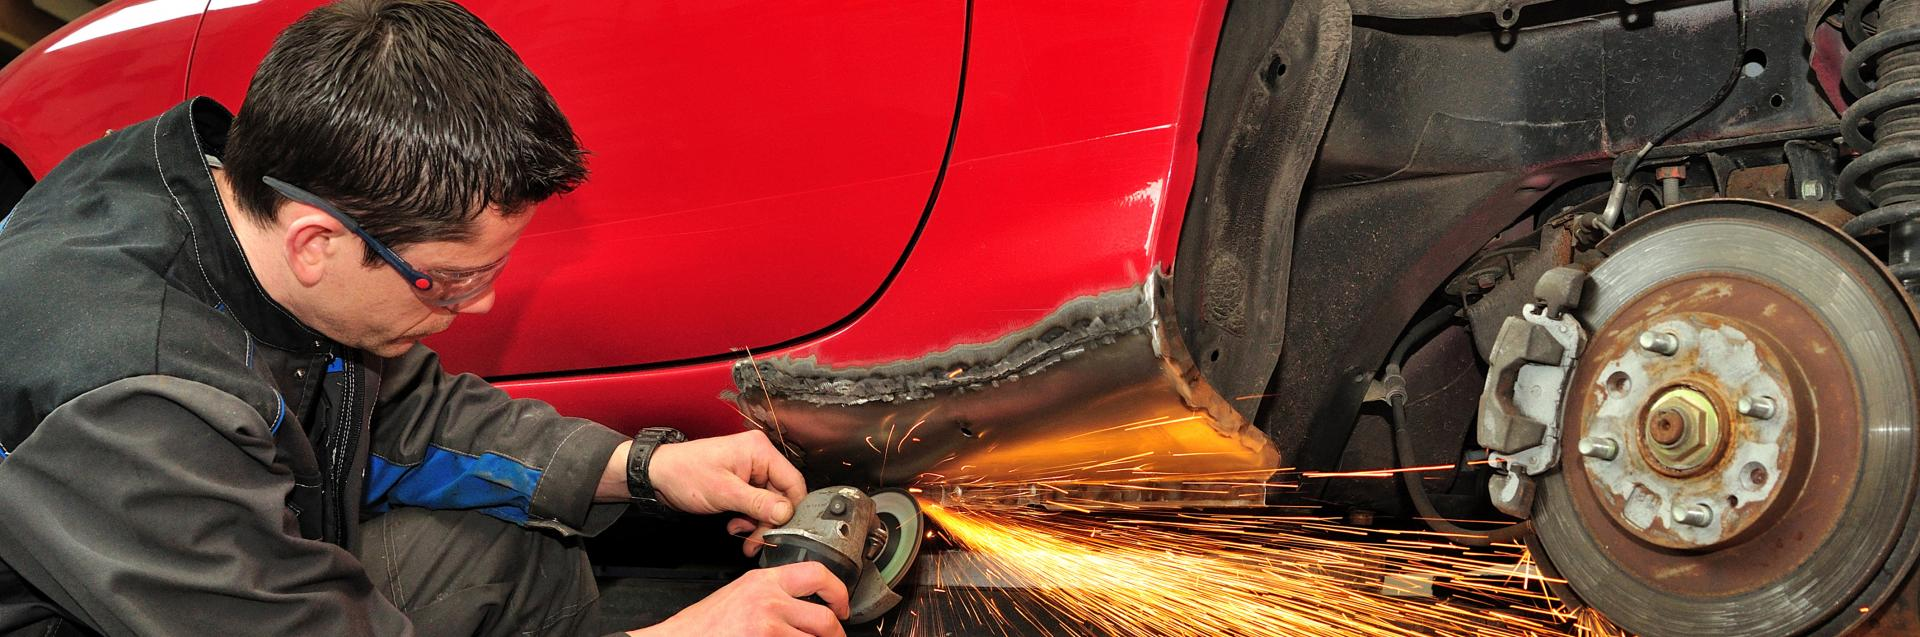 <h2 style='color:#FFFFFF !important;                                              '>Auto Body Work</h2>                                             <span class='slideDesc'>Learn more about our Auto Body Repairs</span>